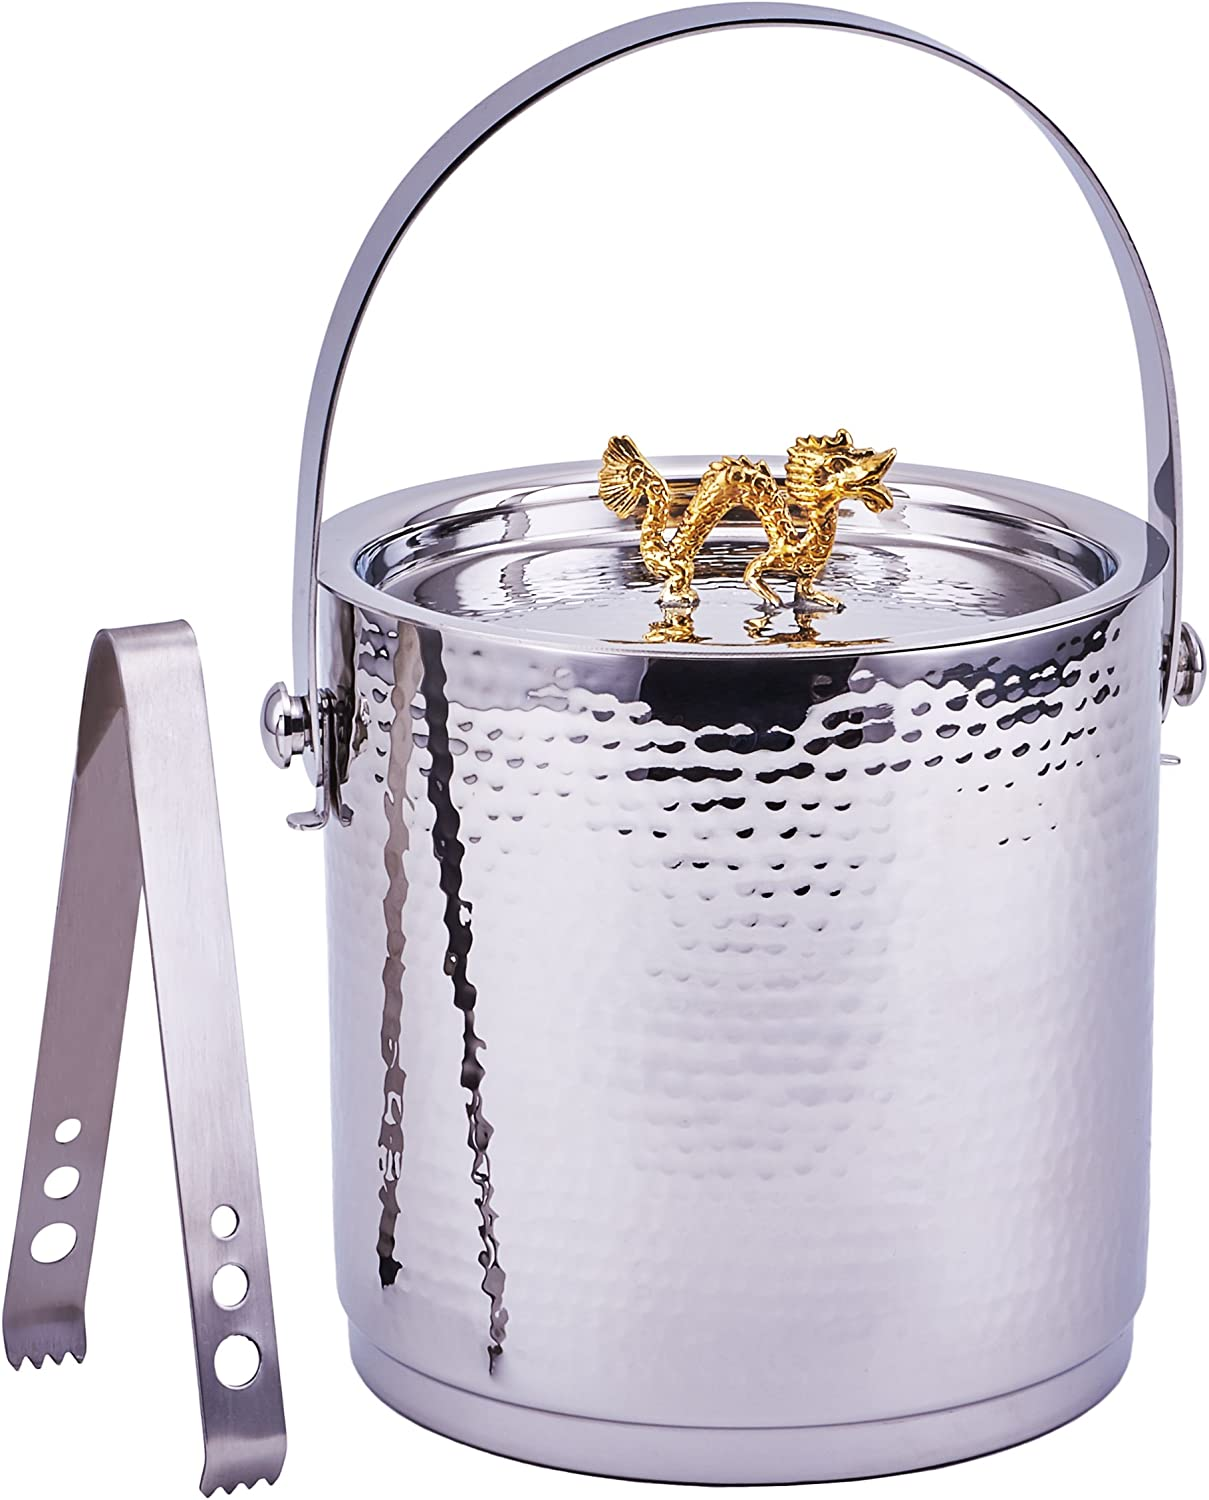 Stainless Steel 3-Quart Old Dutch International 976 Ice Bucket